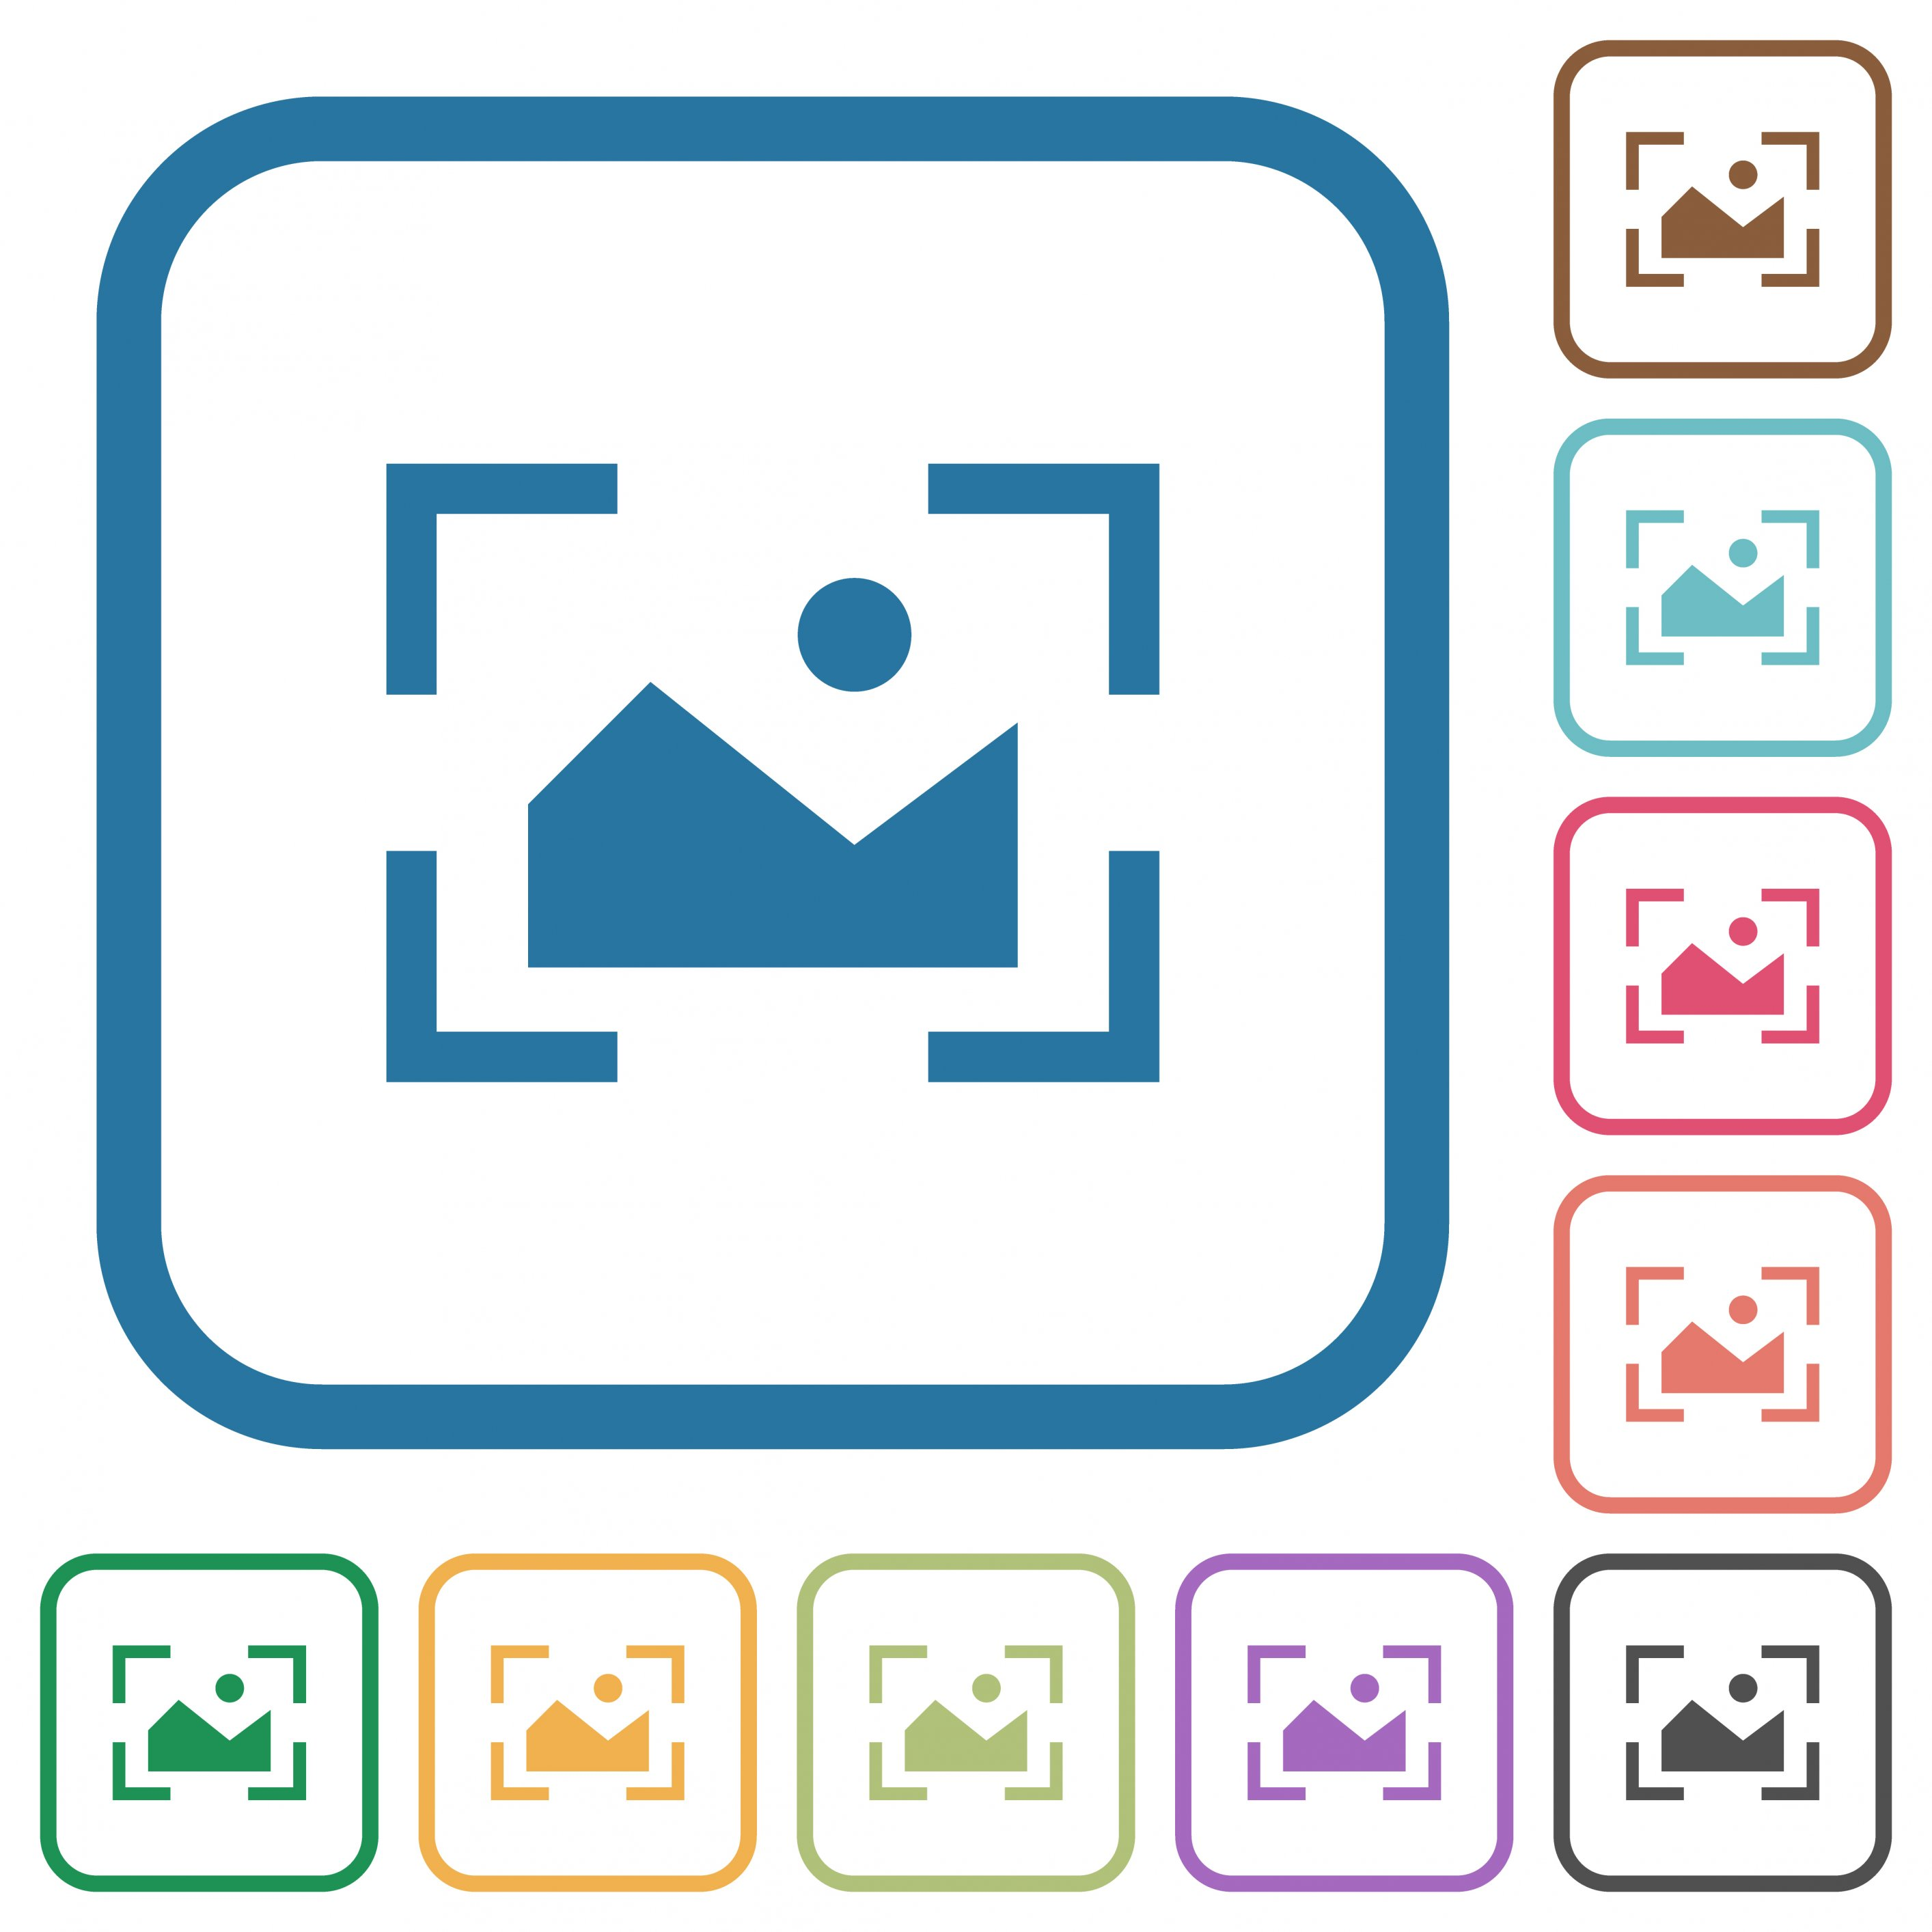 Camera landscape mode simple icons in color rounded square frames on white background - Free image